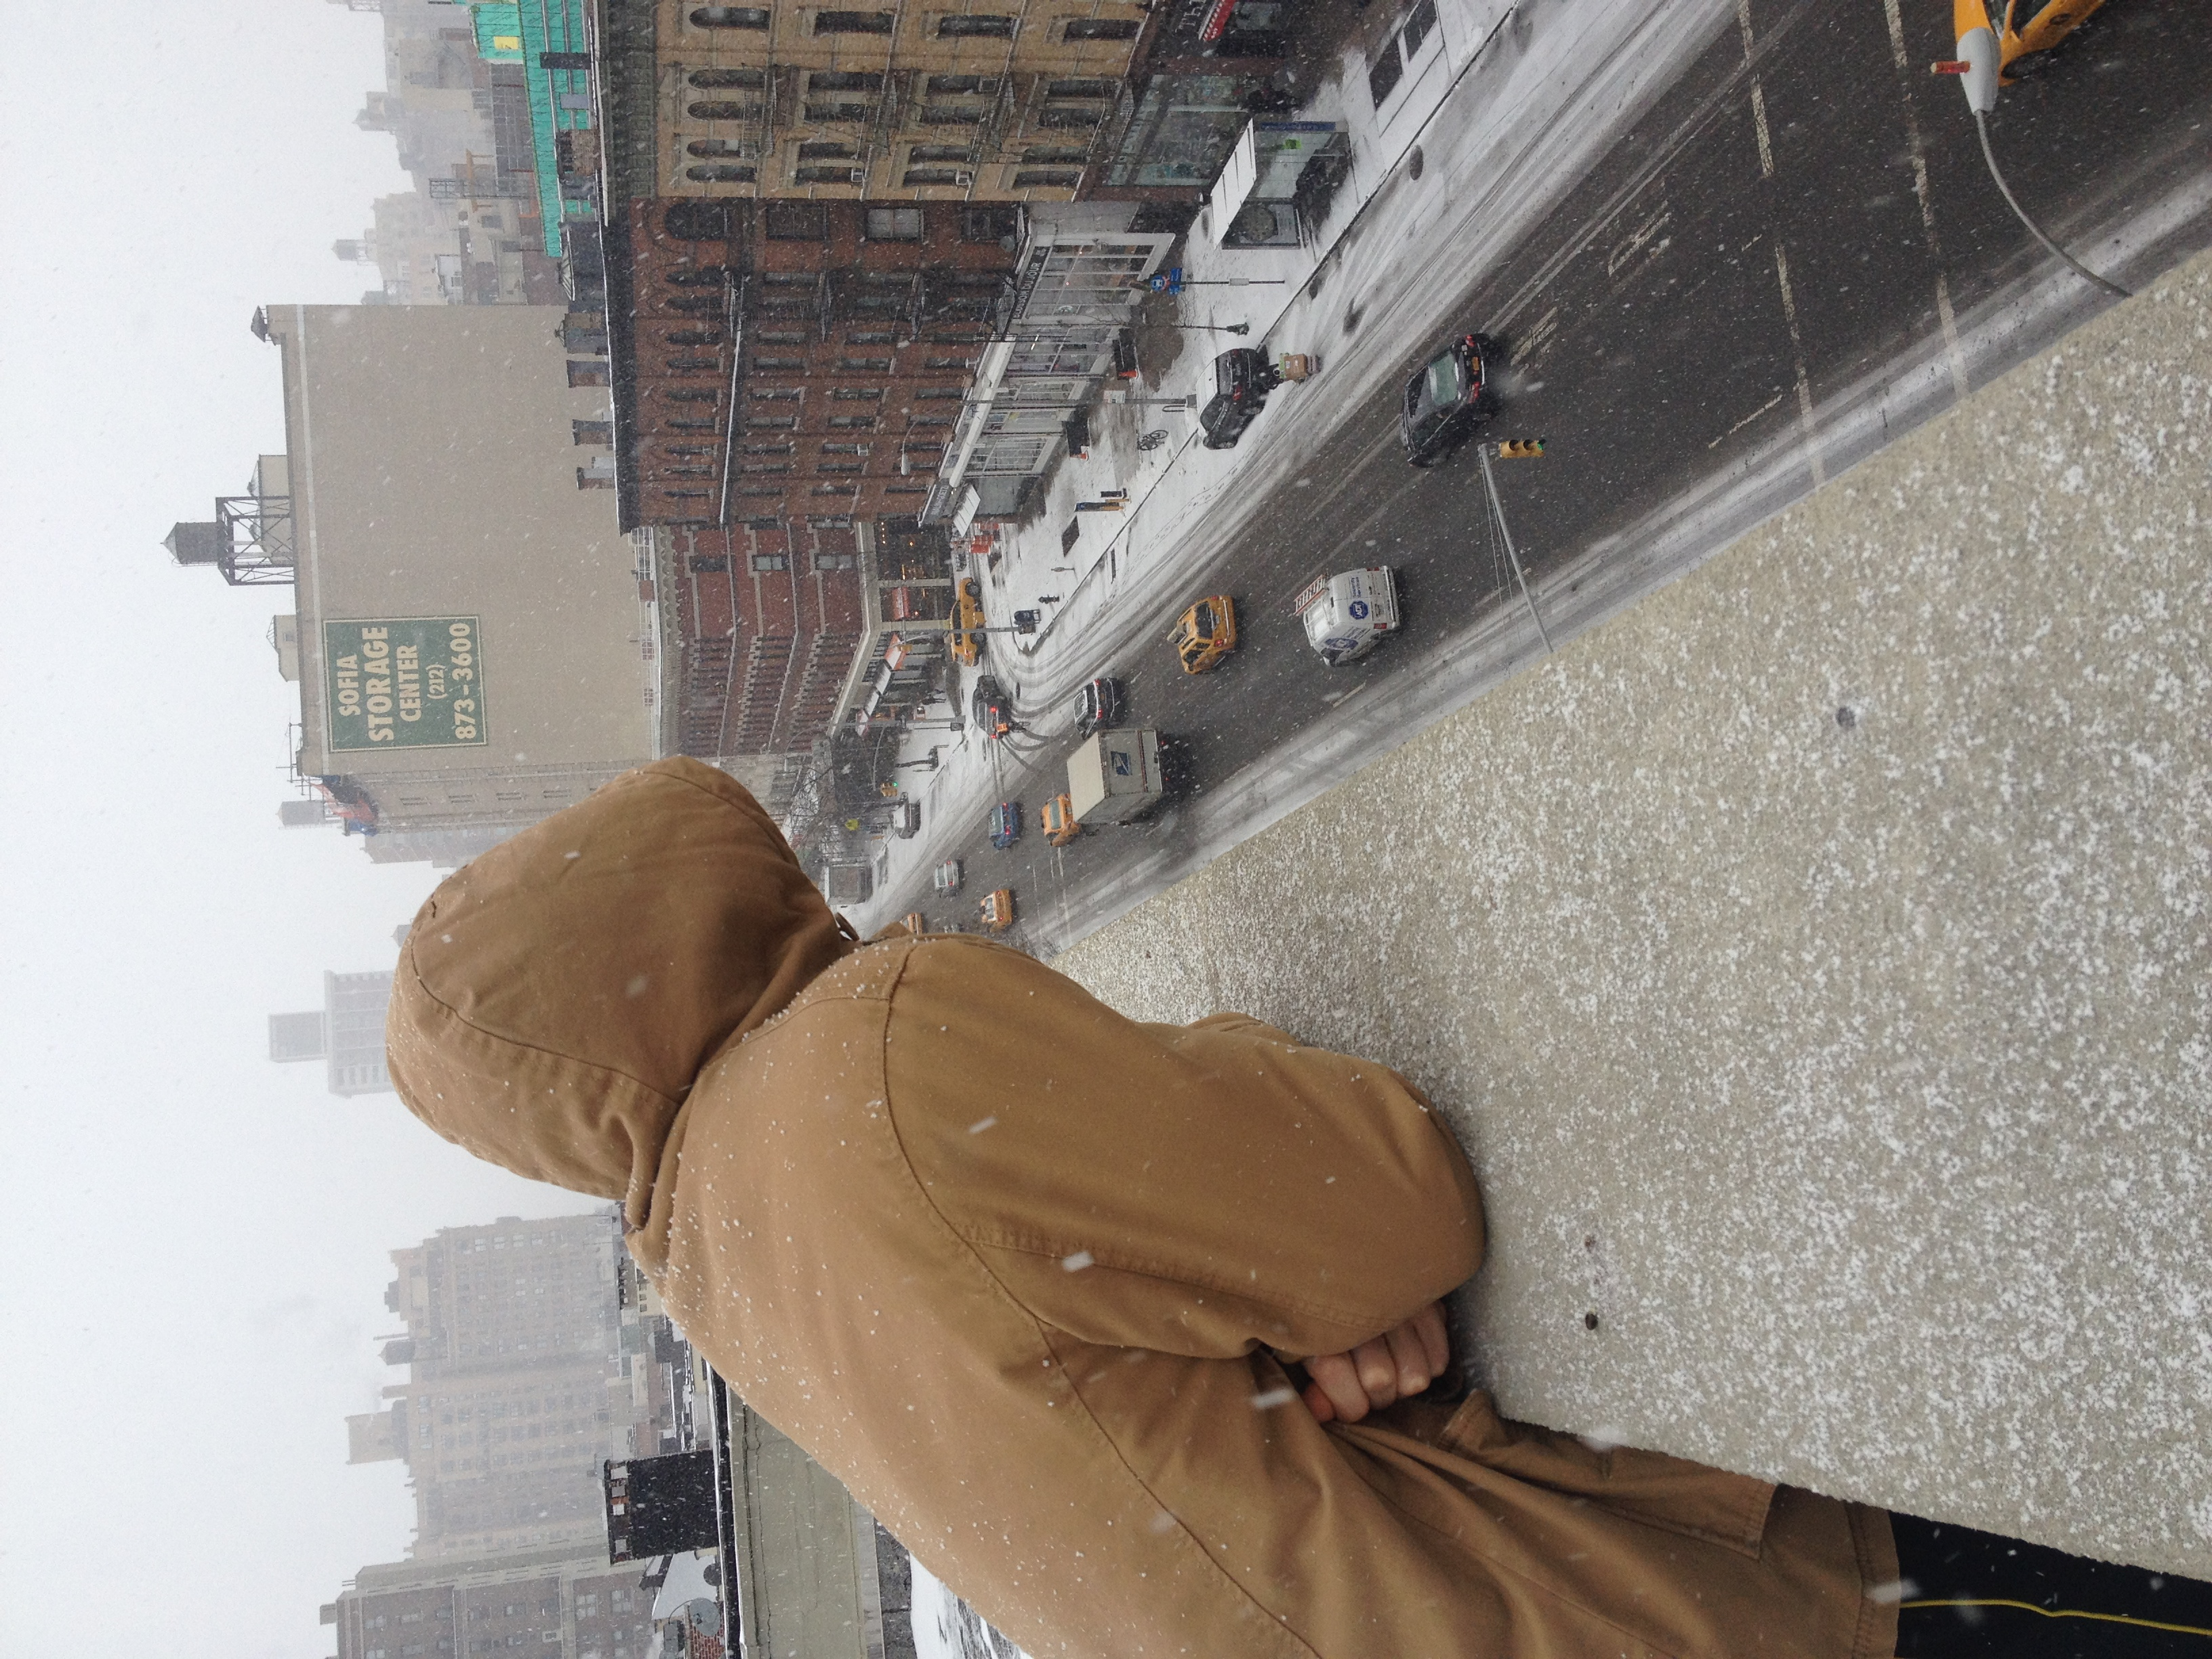 Looking down from my building rooftop on Amsterdam Ave.